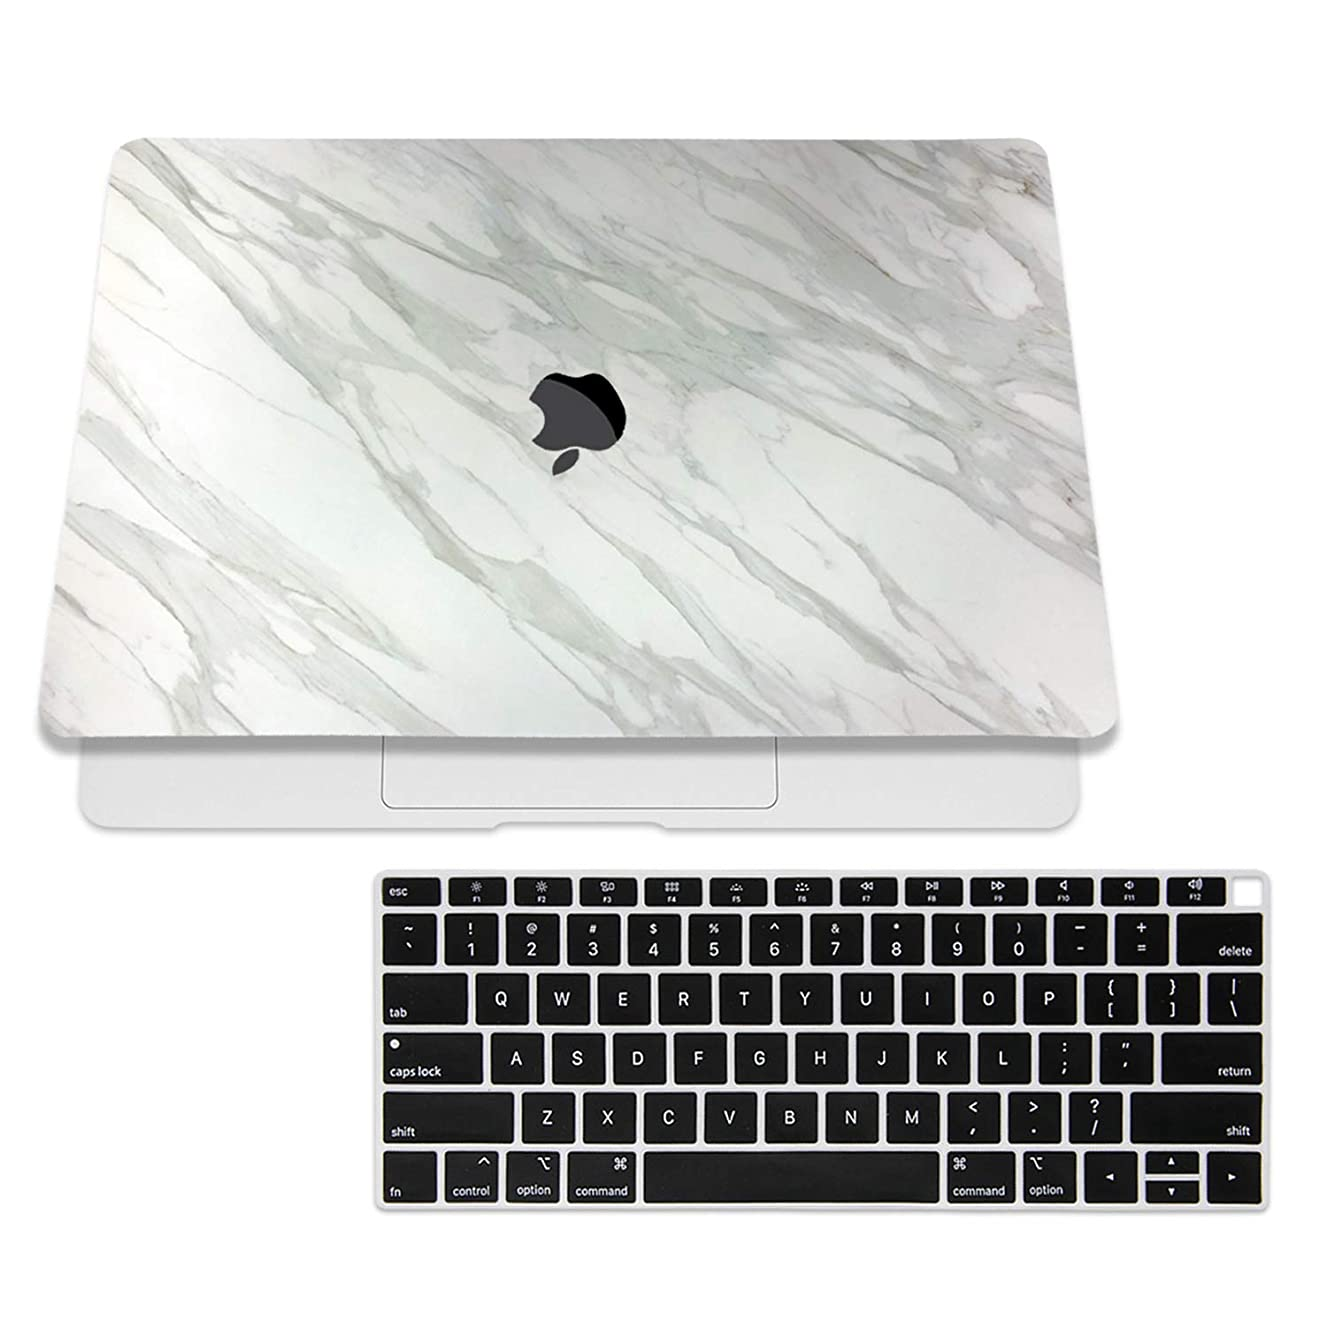 SOJITEK White Marbled Design Texture Skin Decal Sticker for 2018 MacBook Air 13 Inch A1932 Model with Touch ID & Includes Black Keyboard Cover